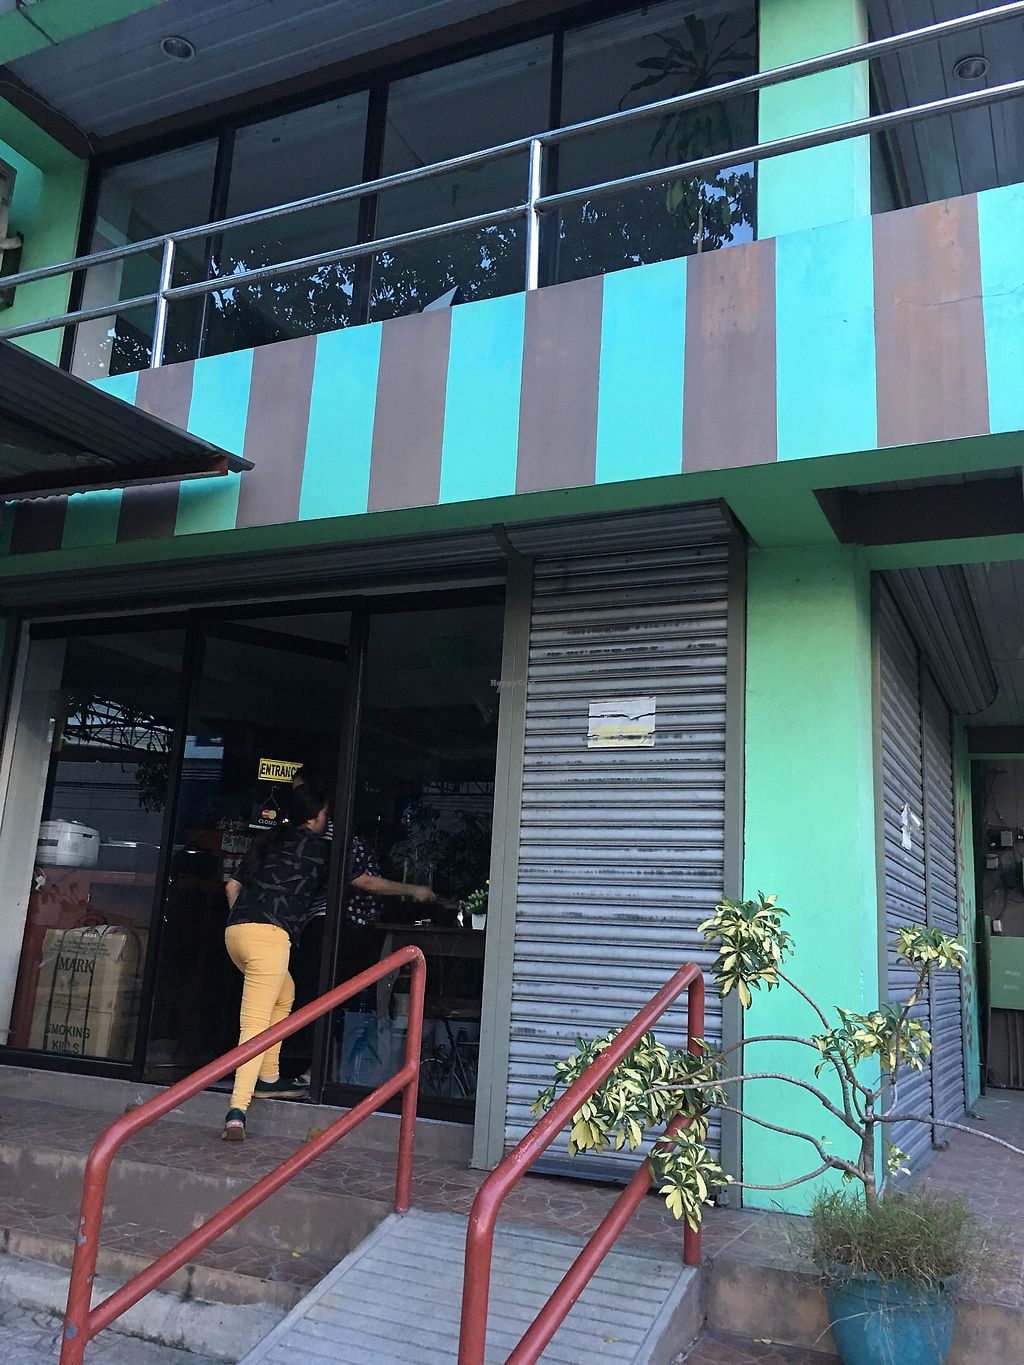 """Photo of Vegan Hygienic Foodhaus  by <a href=""""/members/profile/Durianrider"""">Durianrider</a> <br/>Front door  <br/> October 6, 2017  - <a href='/contact/abuse/image/34114/312221'>Report</a>"""